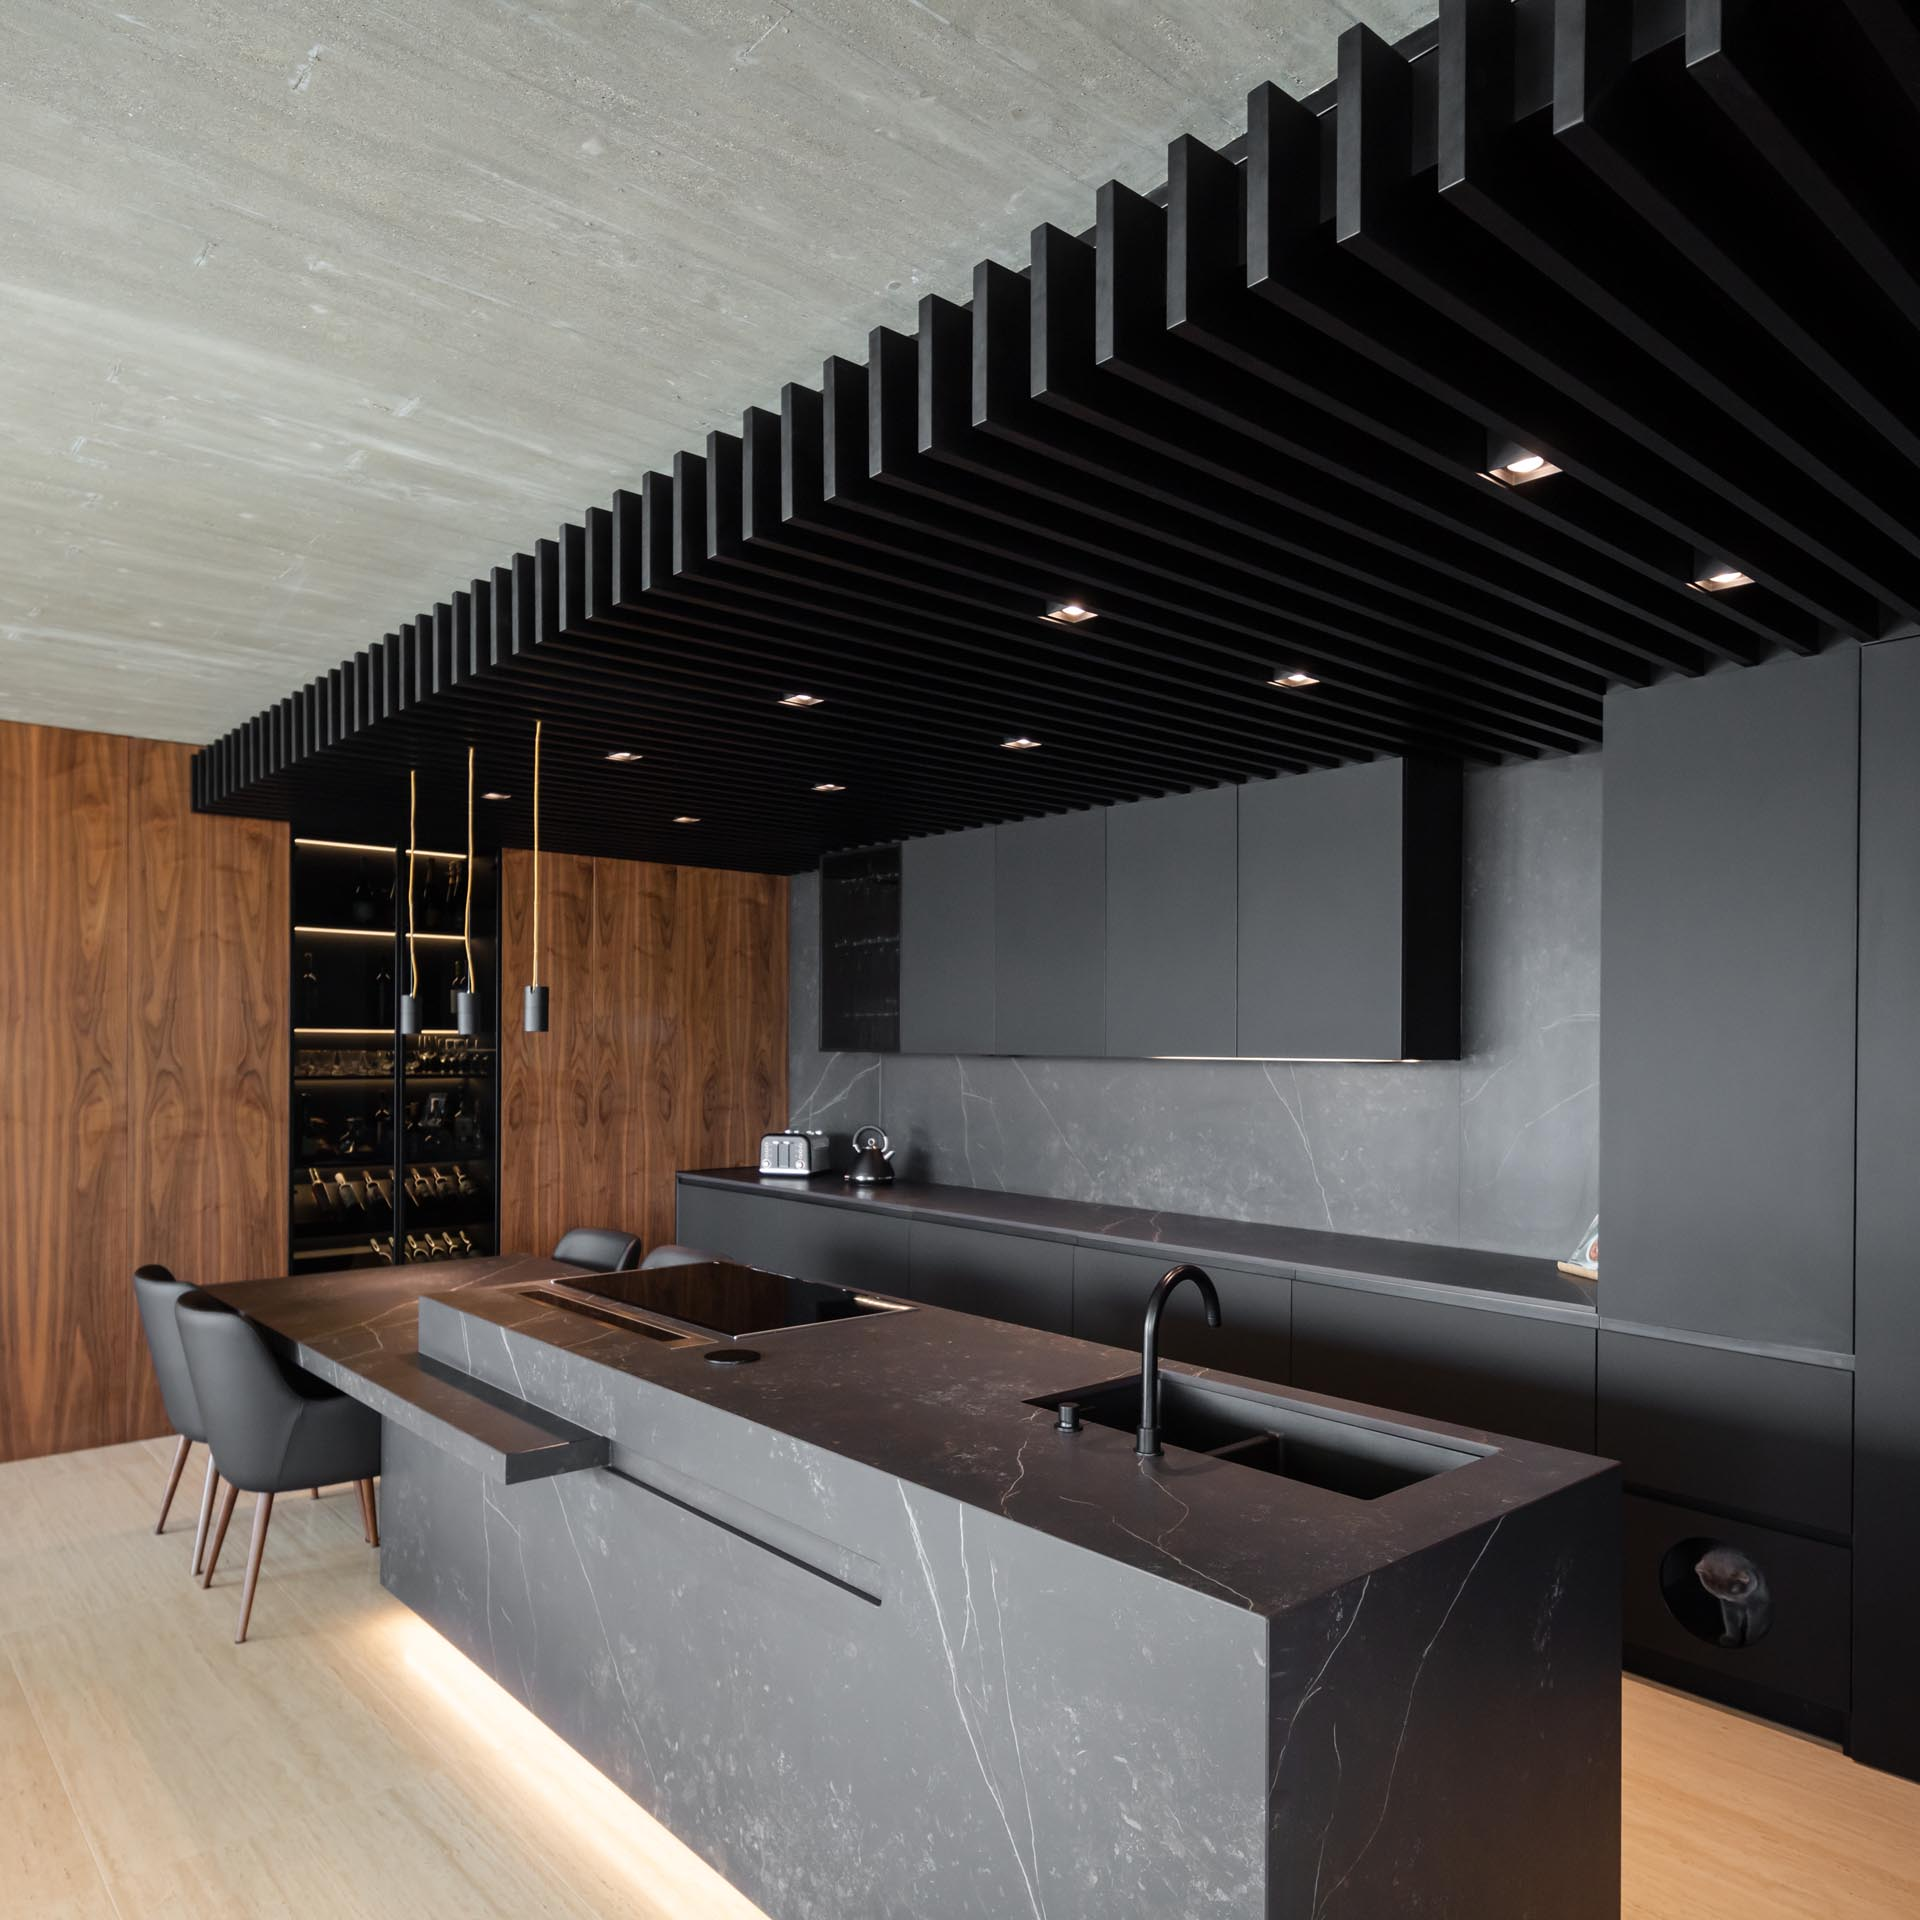 A modern kitchen with a wall of matte black minimalist cabinets (which also include a little door for access to a cat litter box), as well as a black wood ceiling with lighting positioned evenly between the slats.